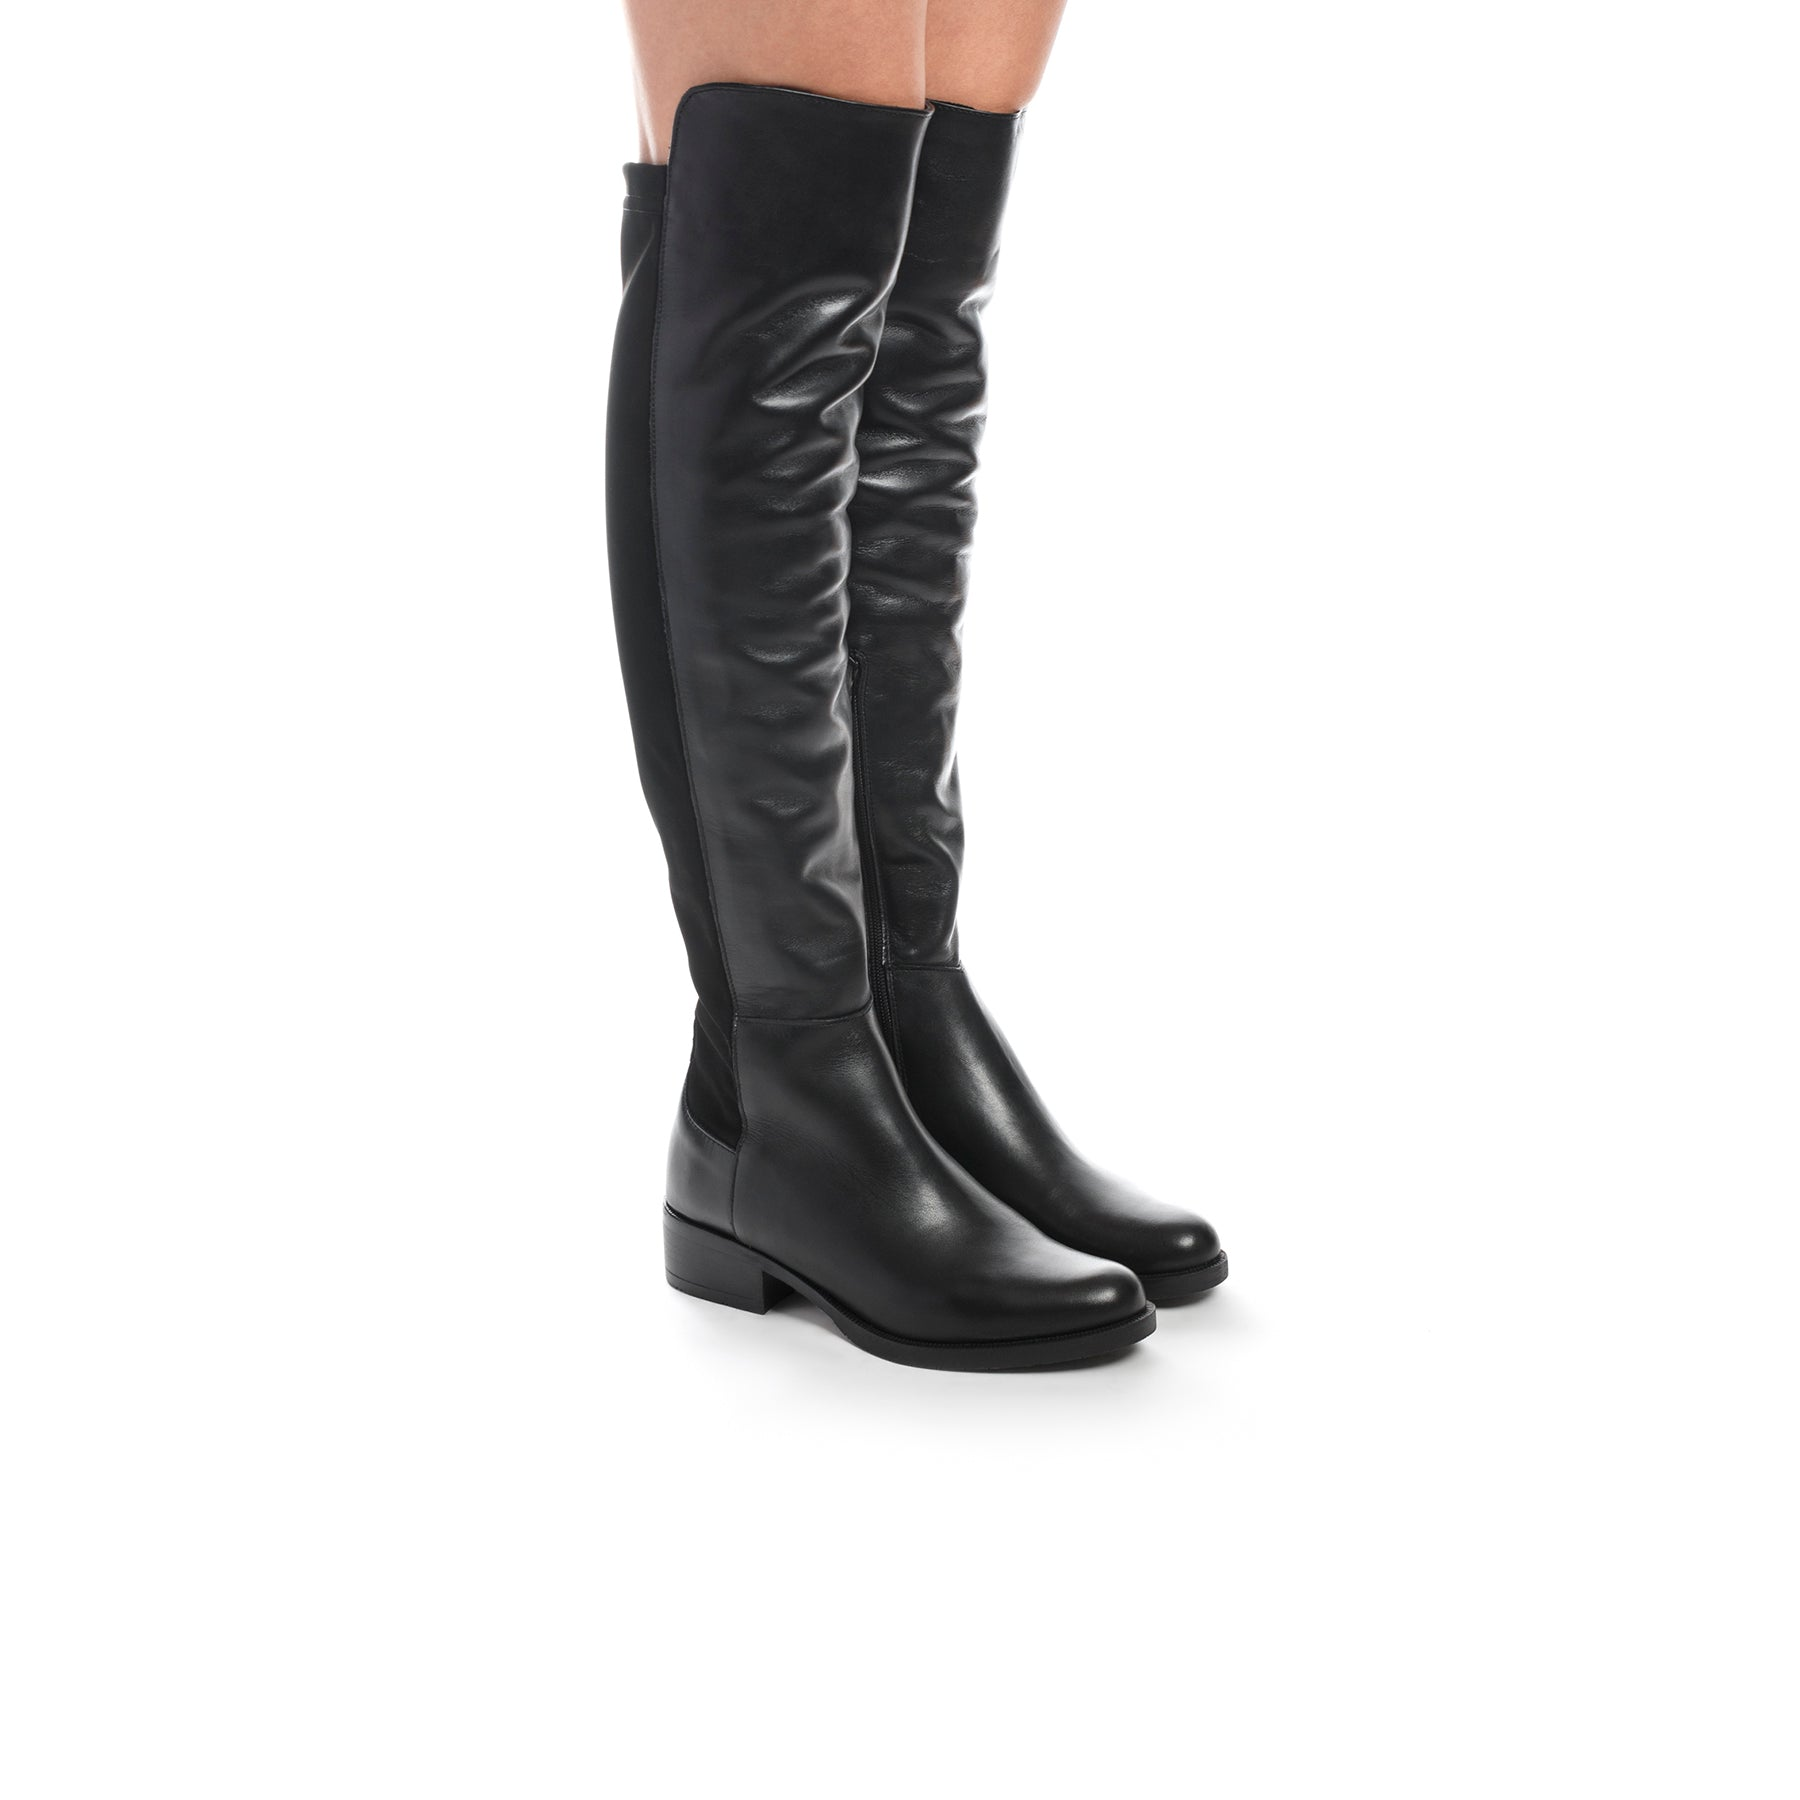 Jockey Black Leather/Stretch Boots